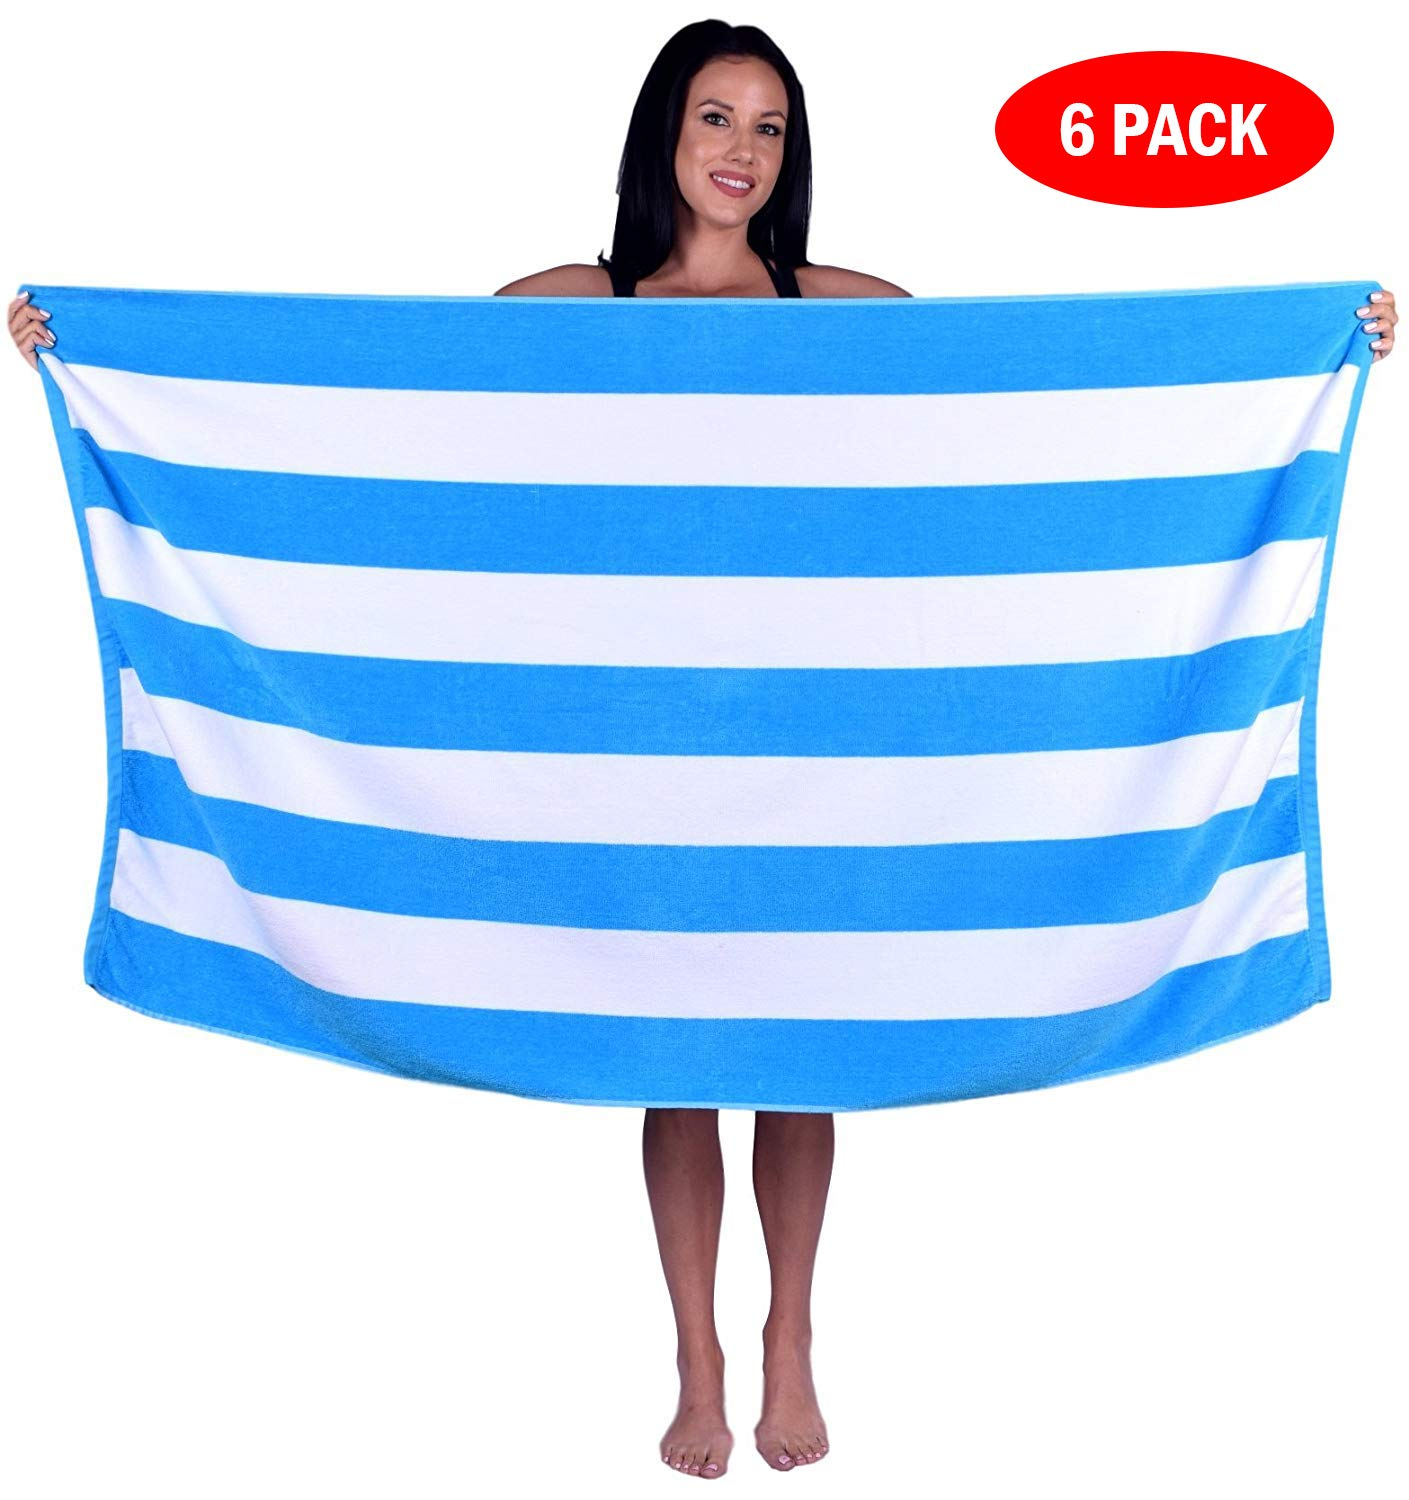 Turquoise Textile 100% Turkish Cotton Eco-Friendly Cabana Stripe Pool Beach Towel, 35x60 Inch (6 Pack, Aqua)